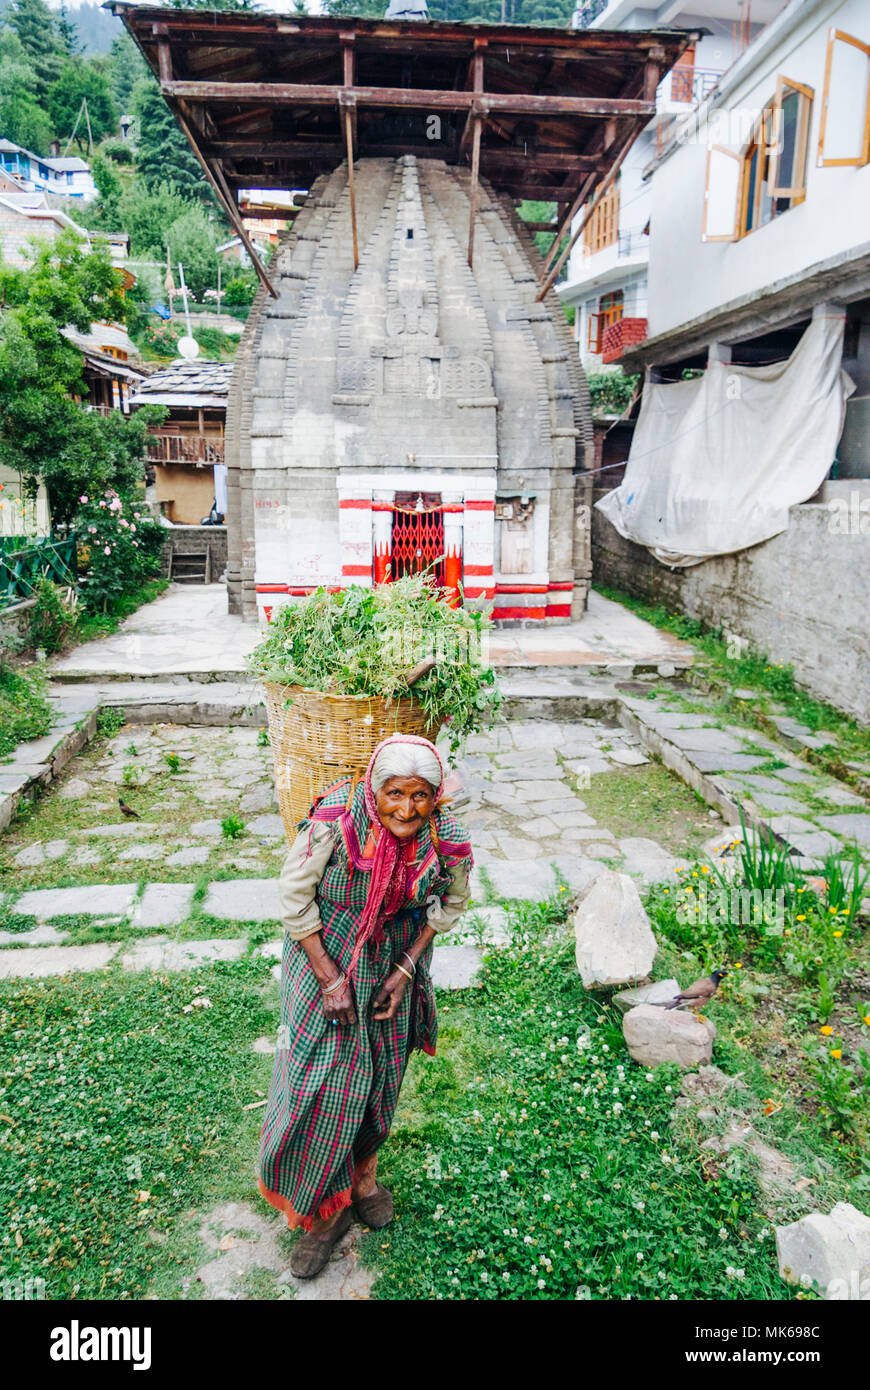 Nagar, Himachal Pradesh, India : 11th-century Vishnu Mandir temple and senior woman carrying a basket full of weed in the historical town of Naggar in - Stock Image